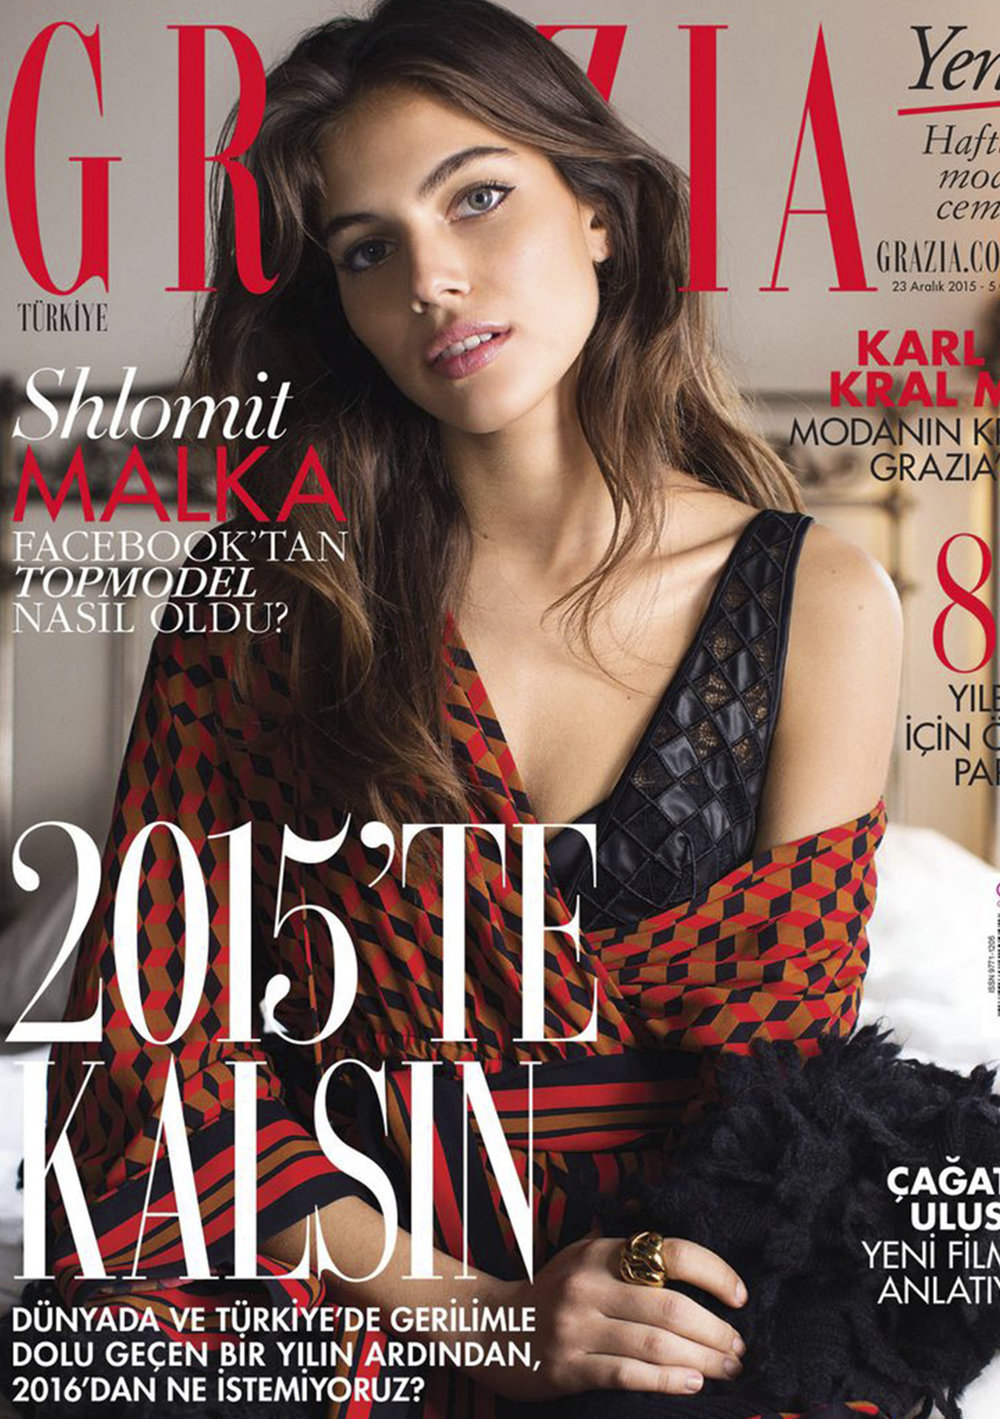 GraziaTurkey - Shlomit Malka 2015, December Issue Cover Story